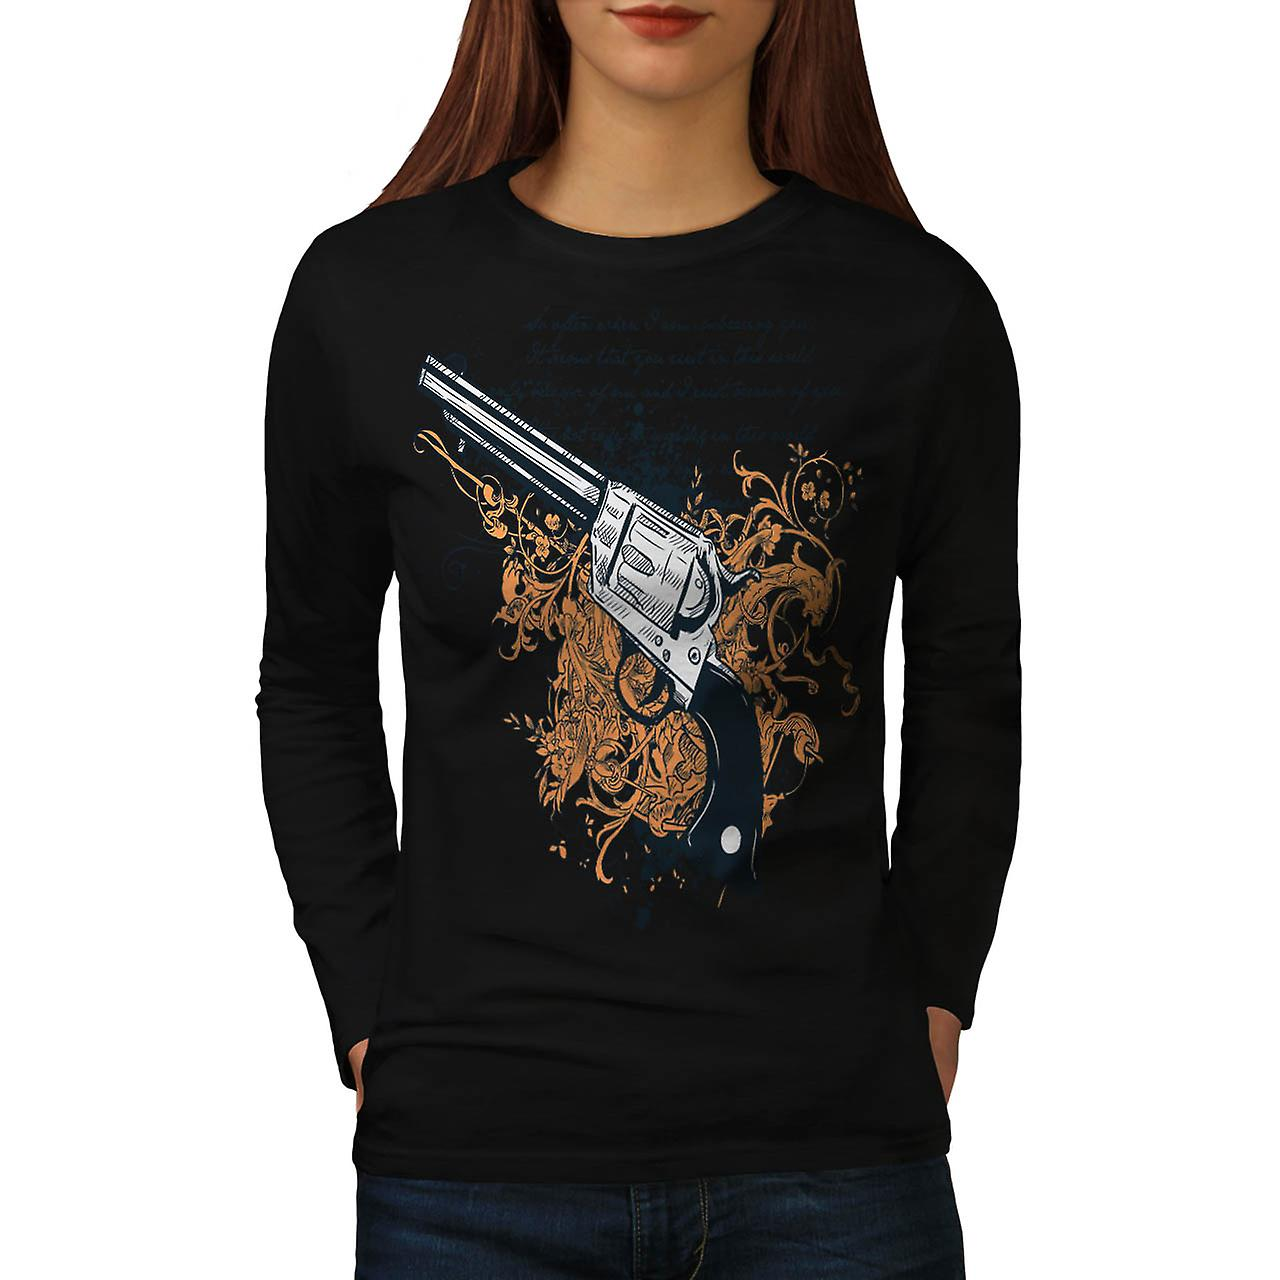 Gun Criminal Gangster Women Black Long Sleeve T-shirt | Wellcoda